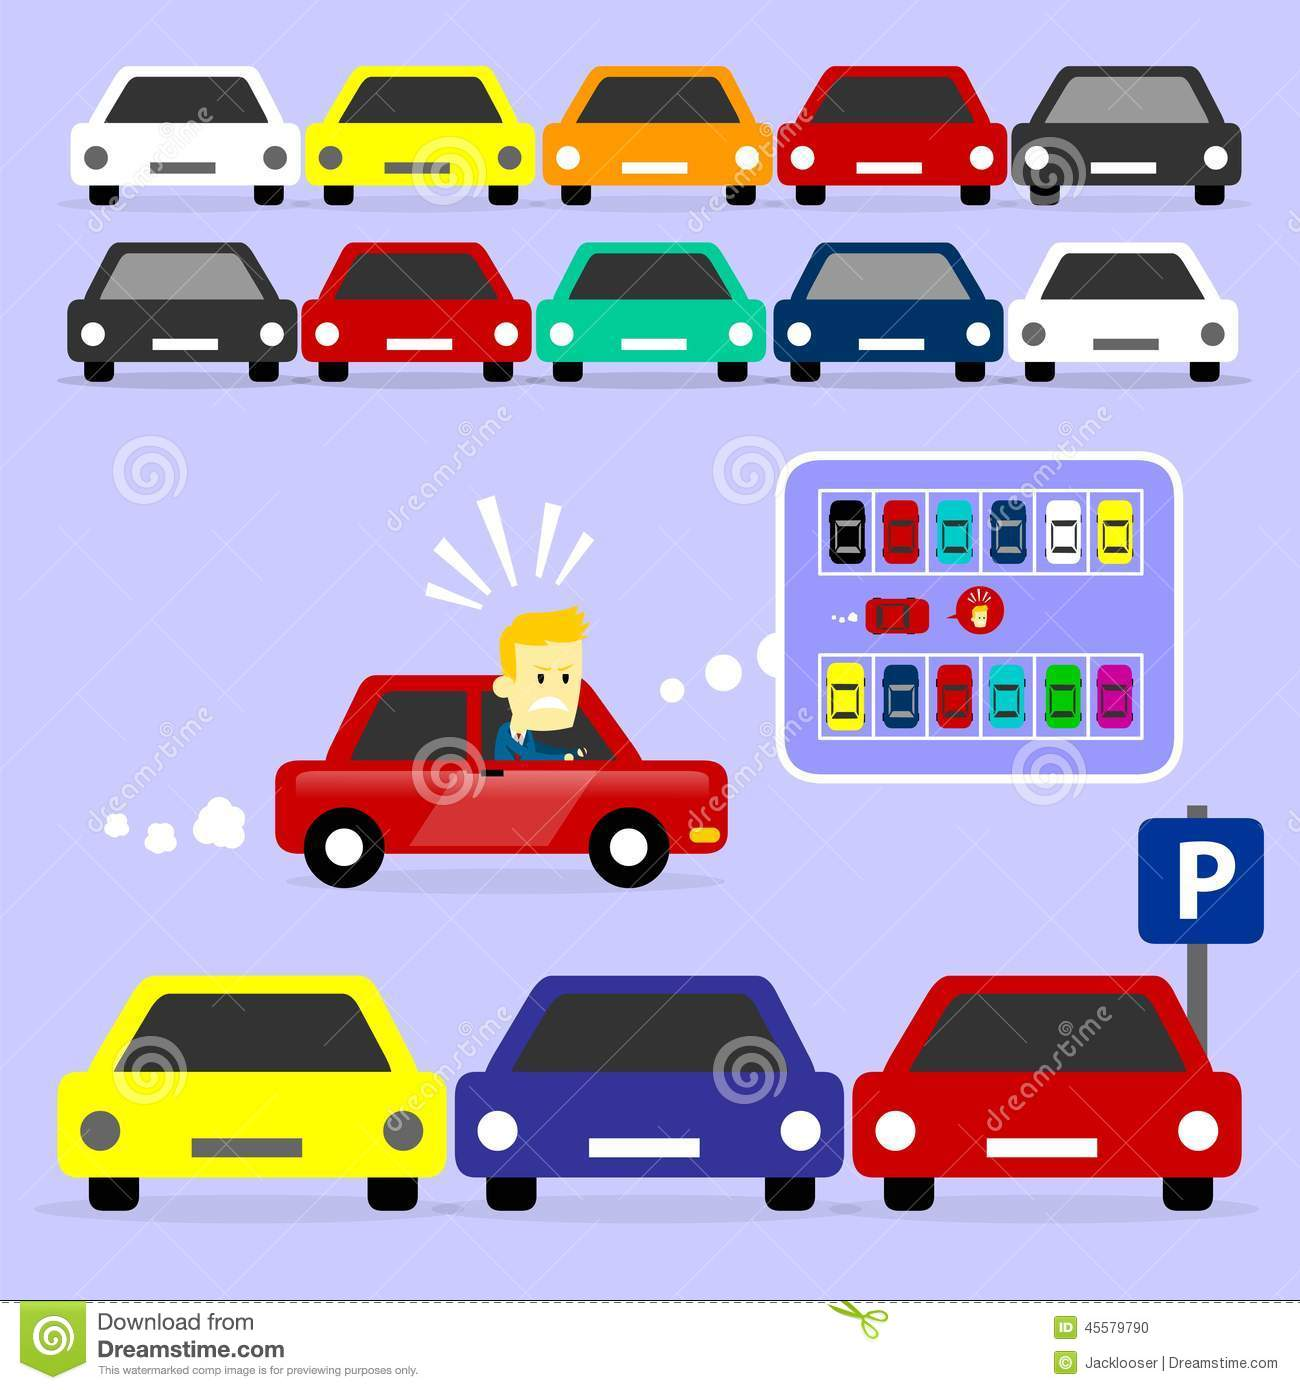 Traffic clipart parking lot #2